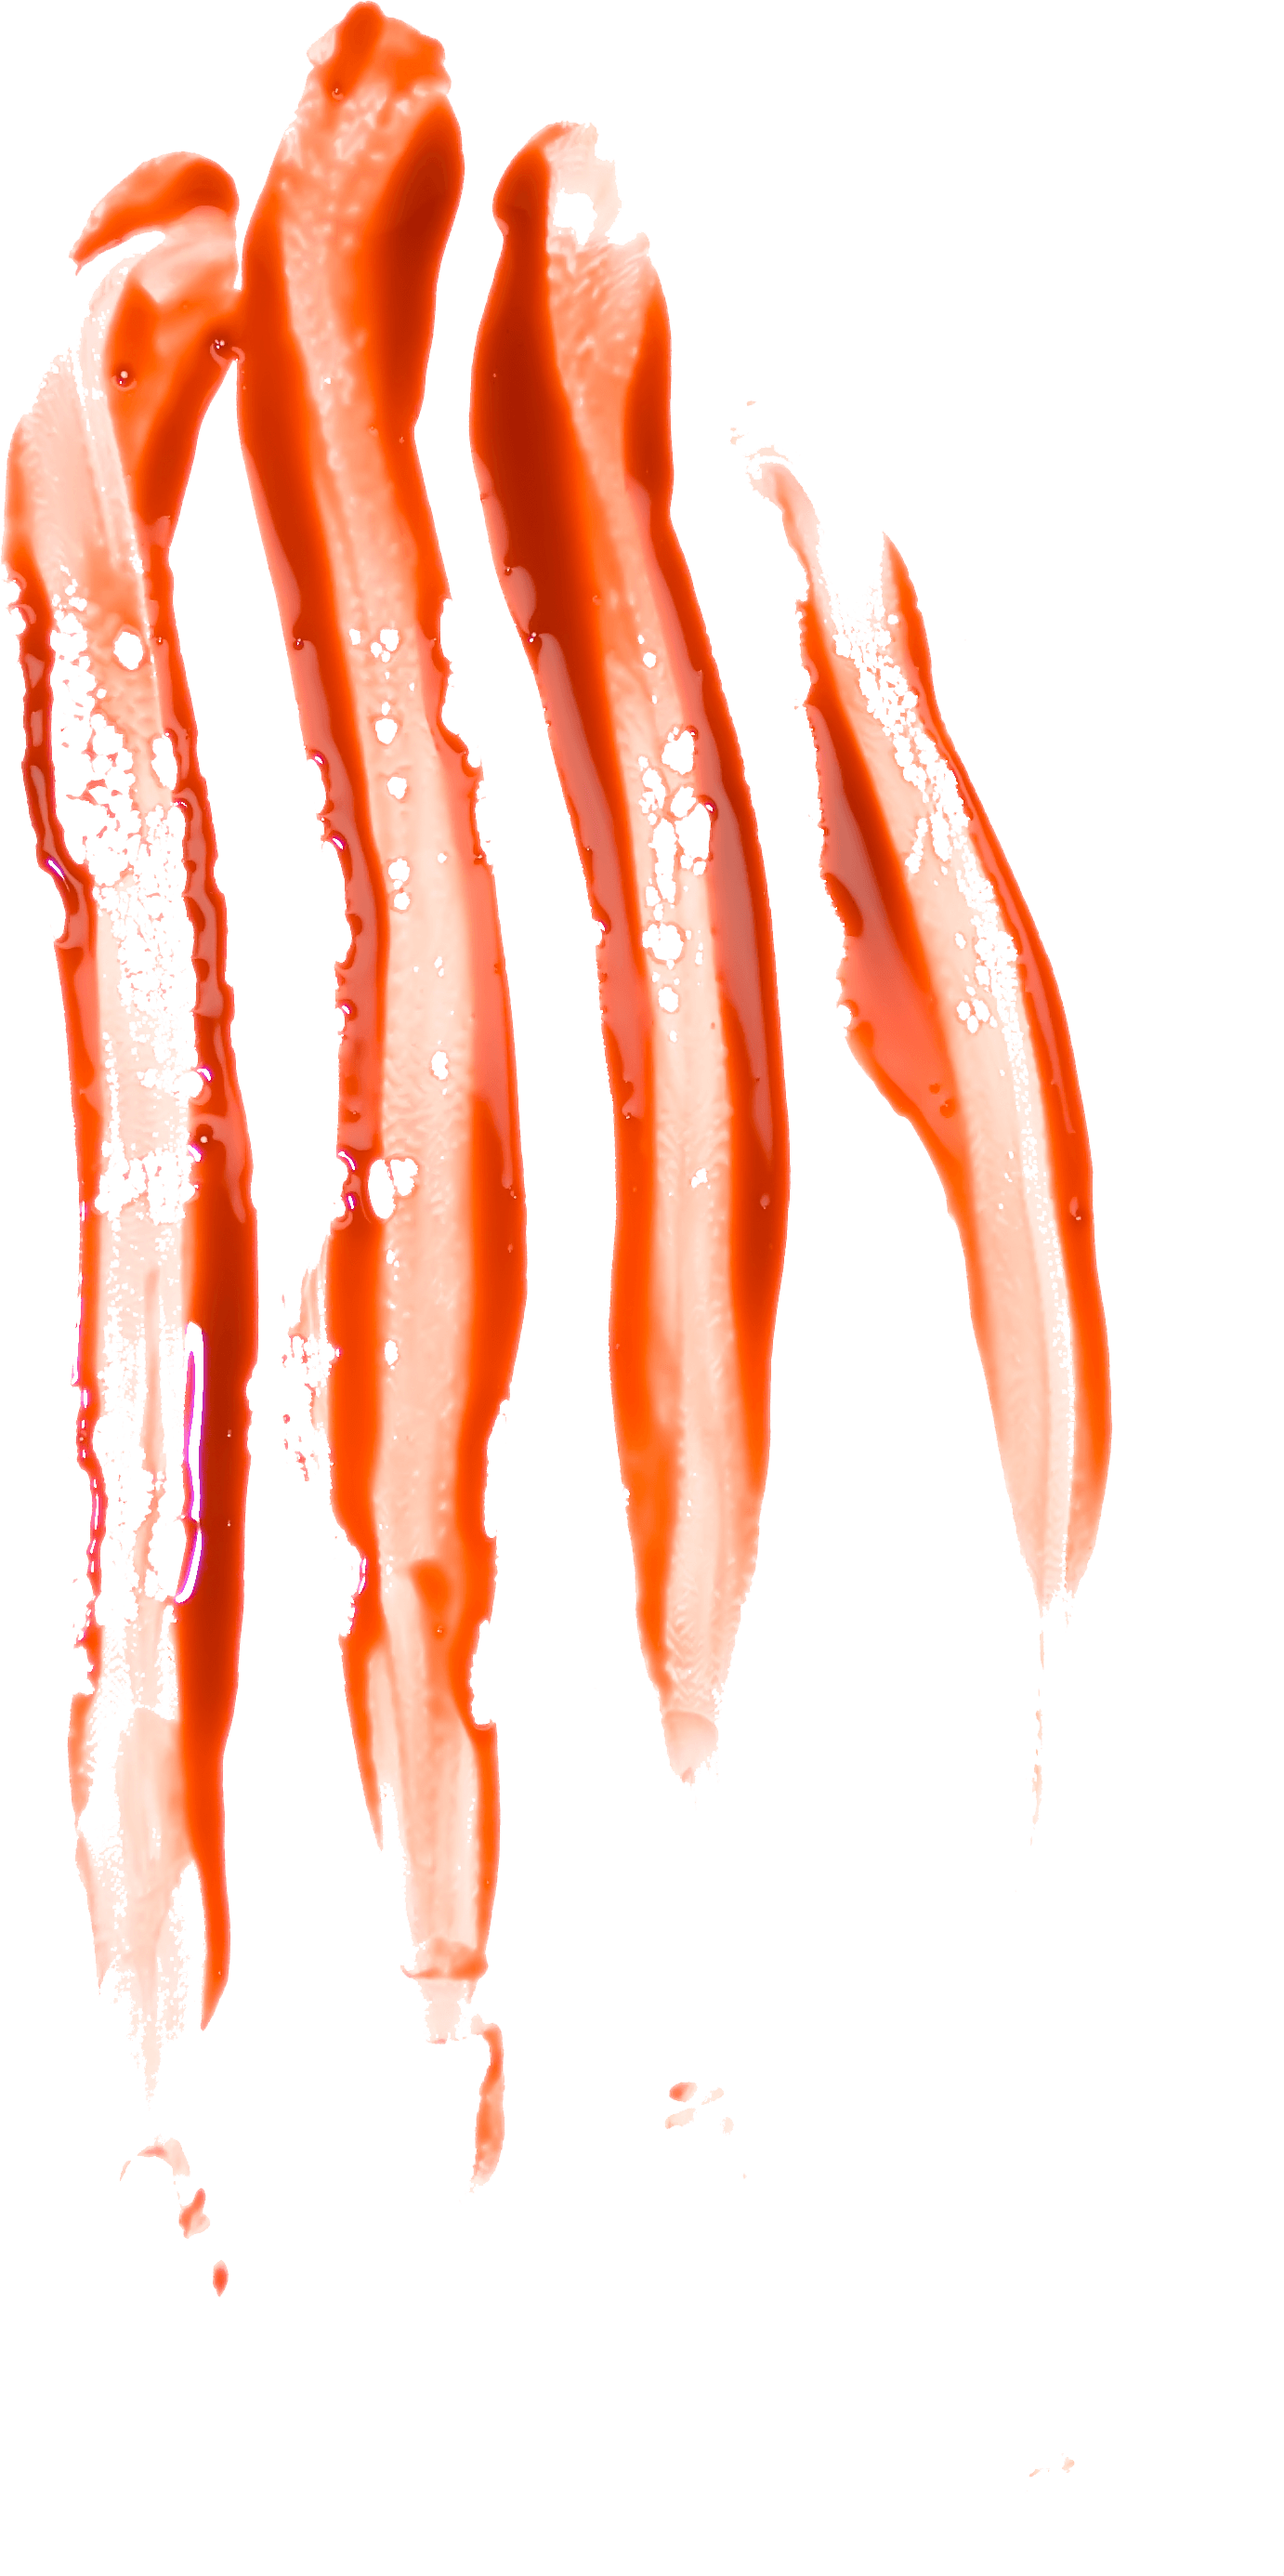 Stain transparent stickpng finger. Dripping blood png